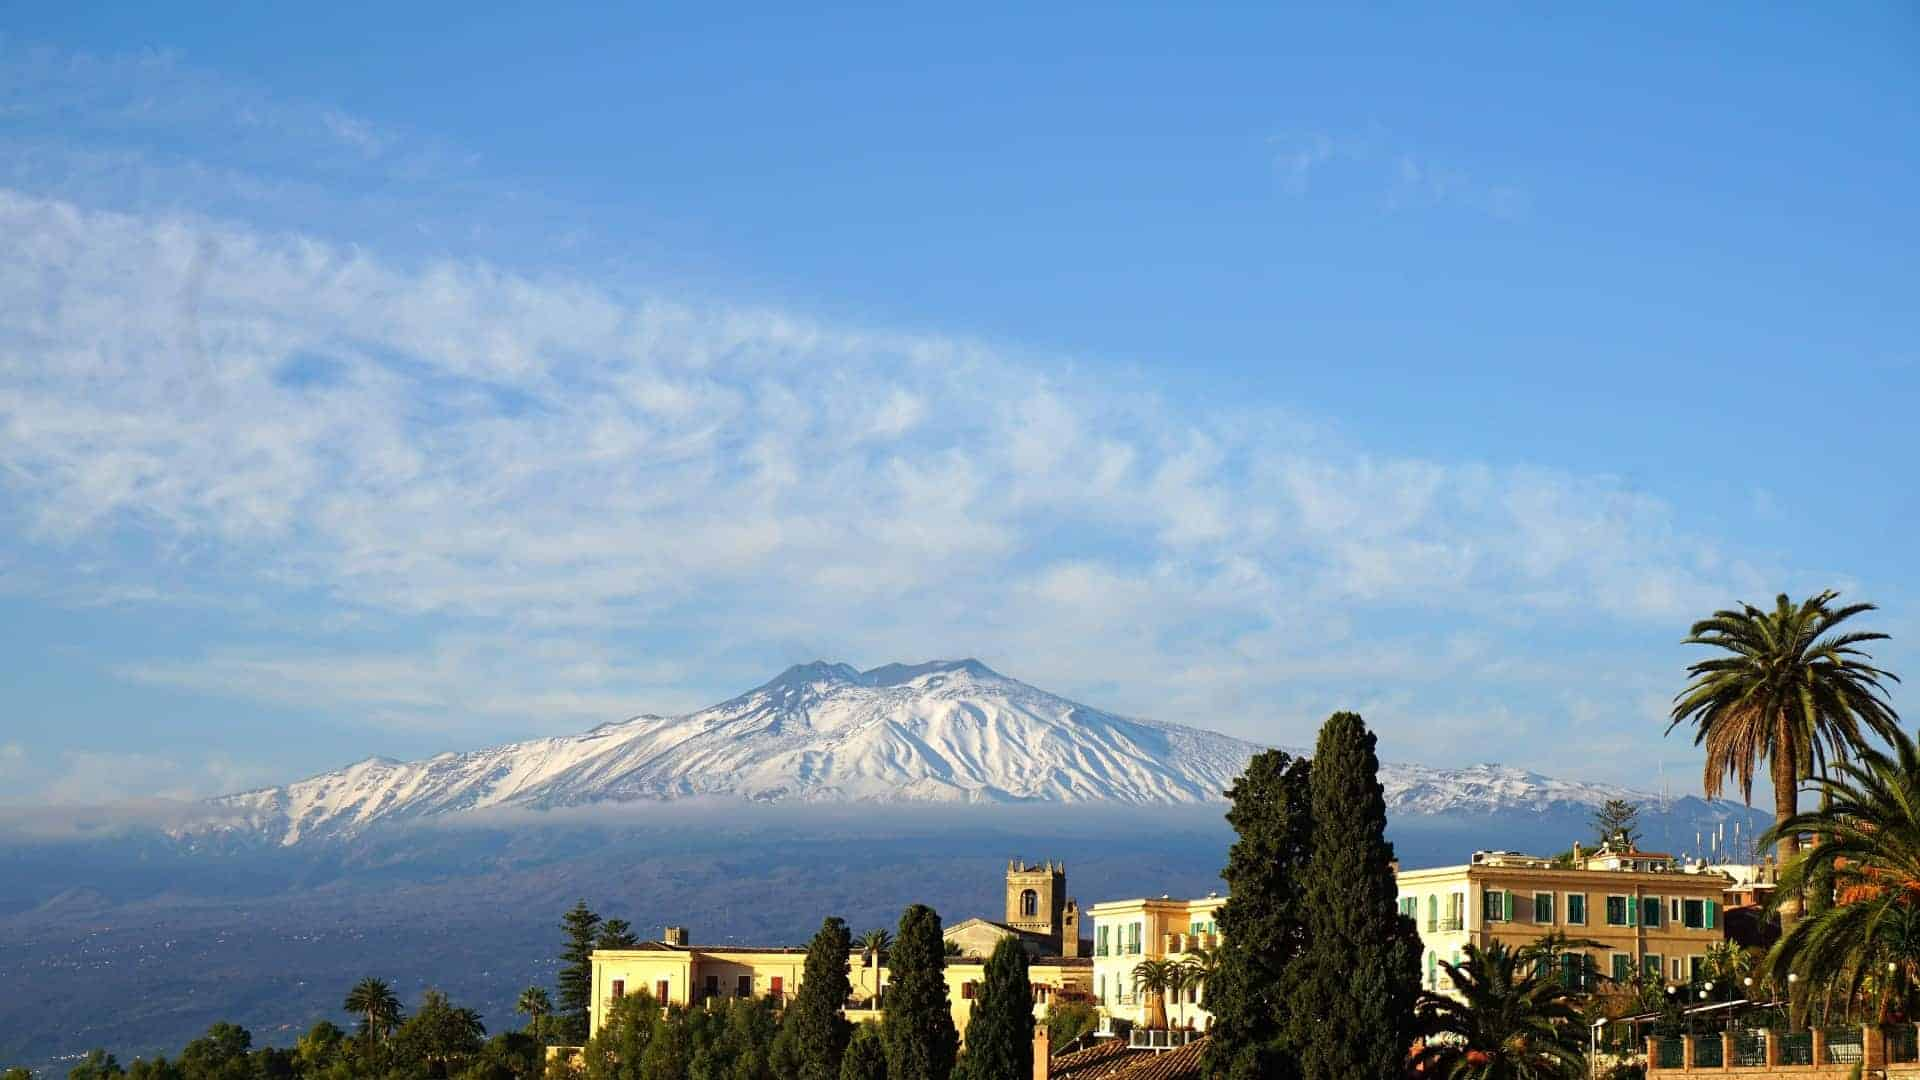 A view of Mt. Etna in Sicily